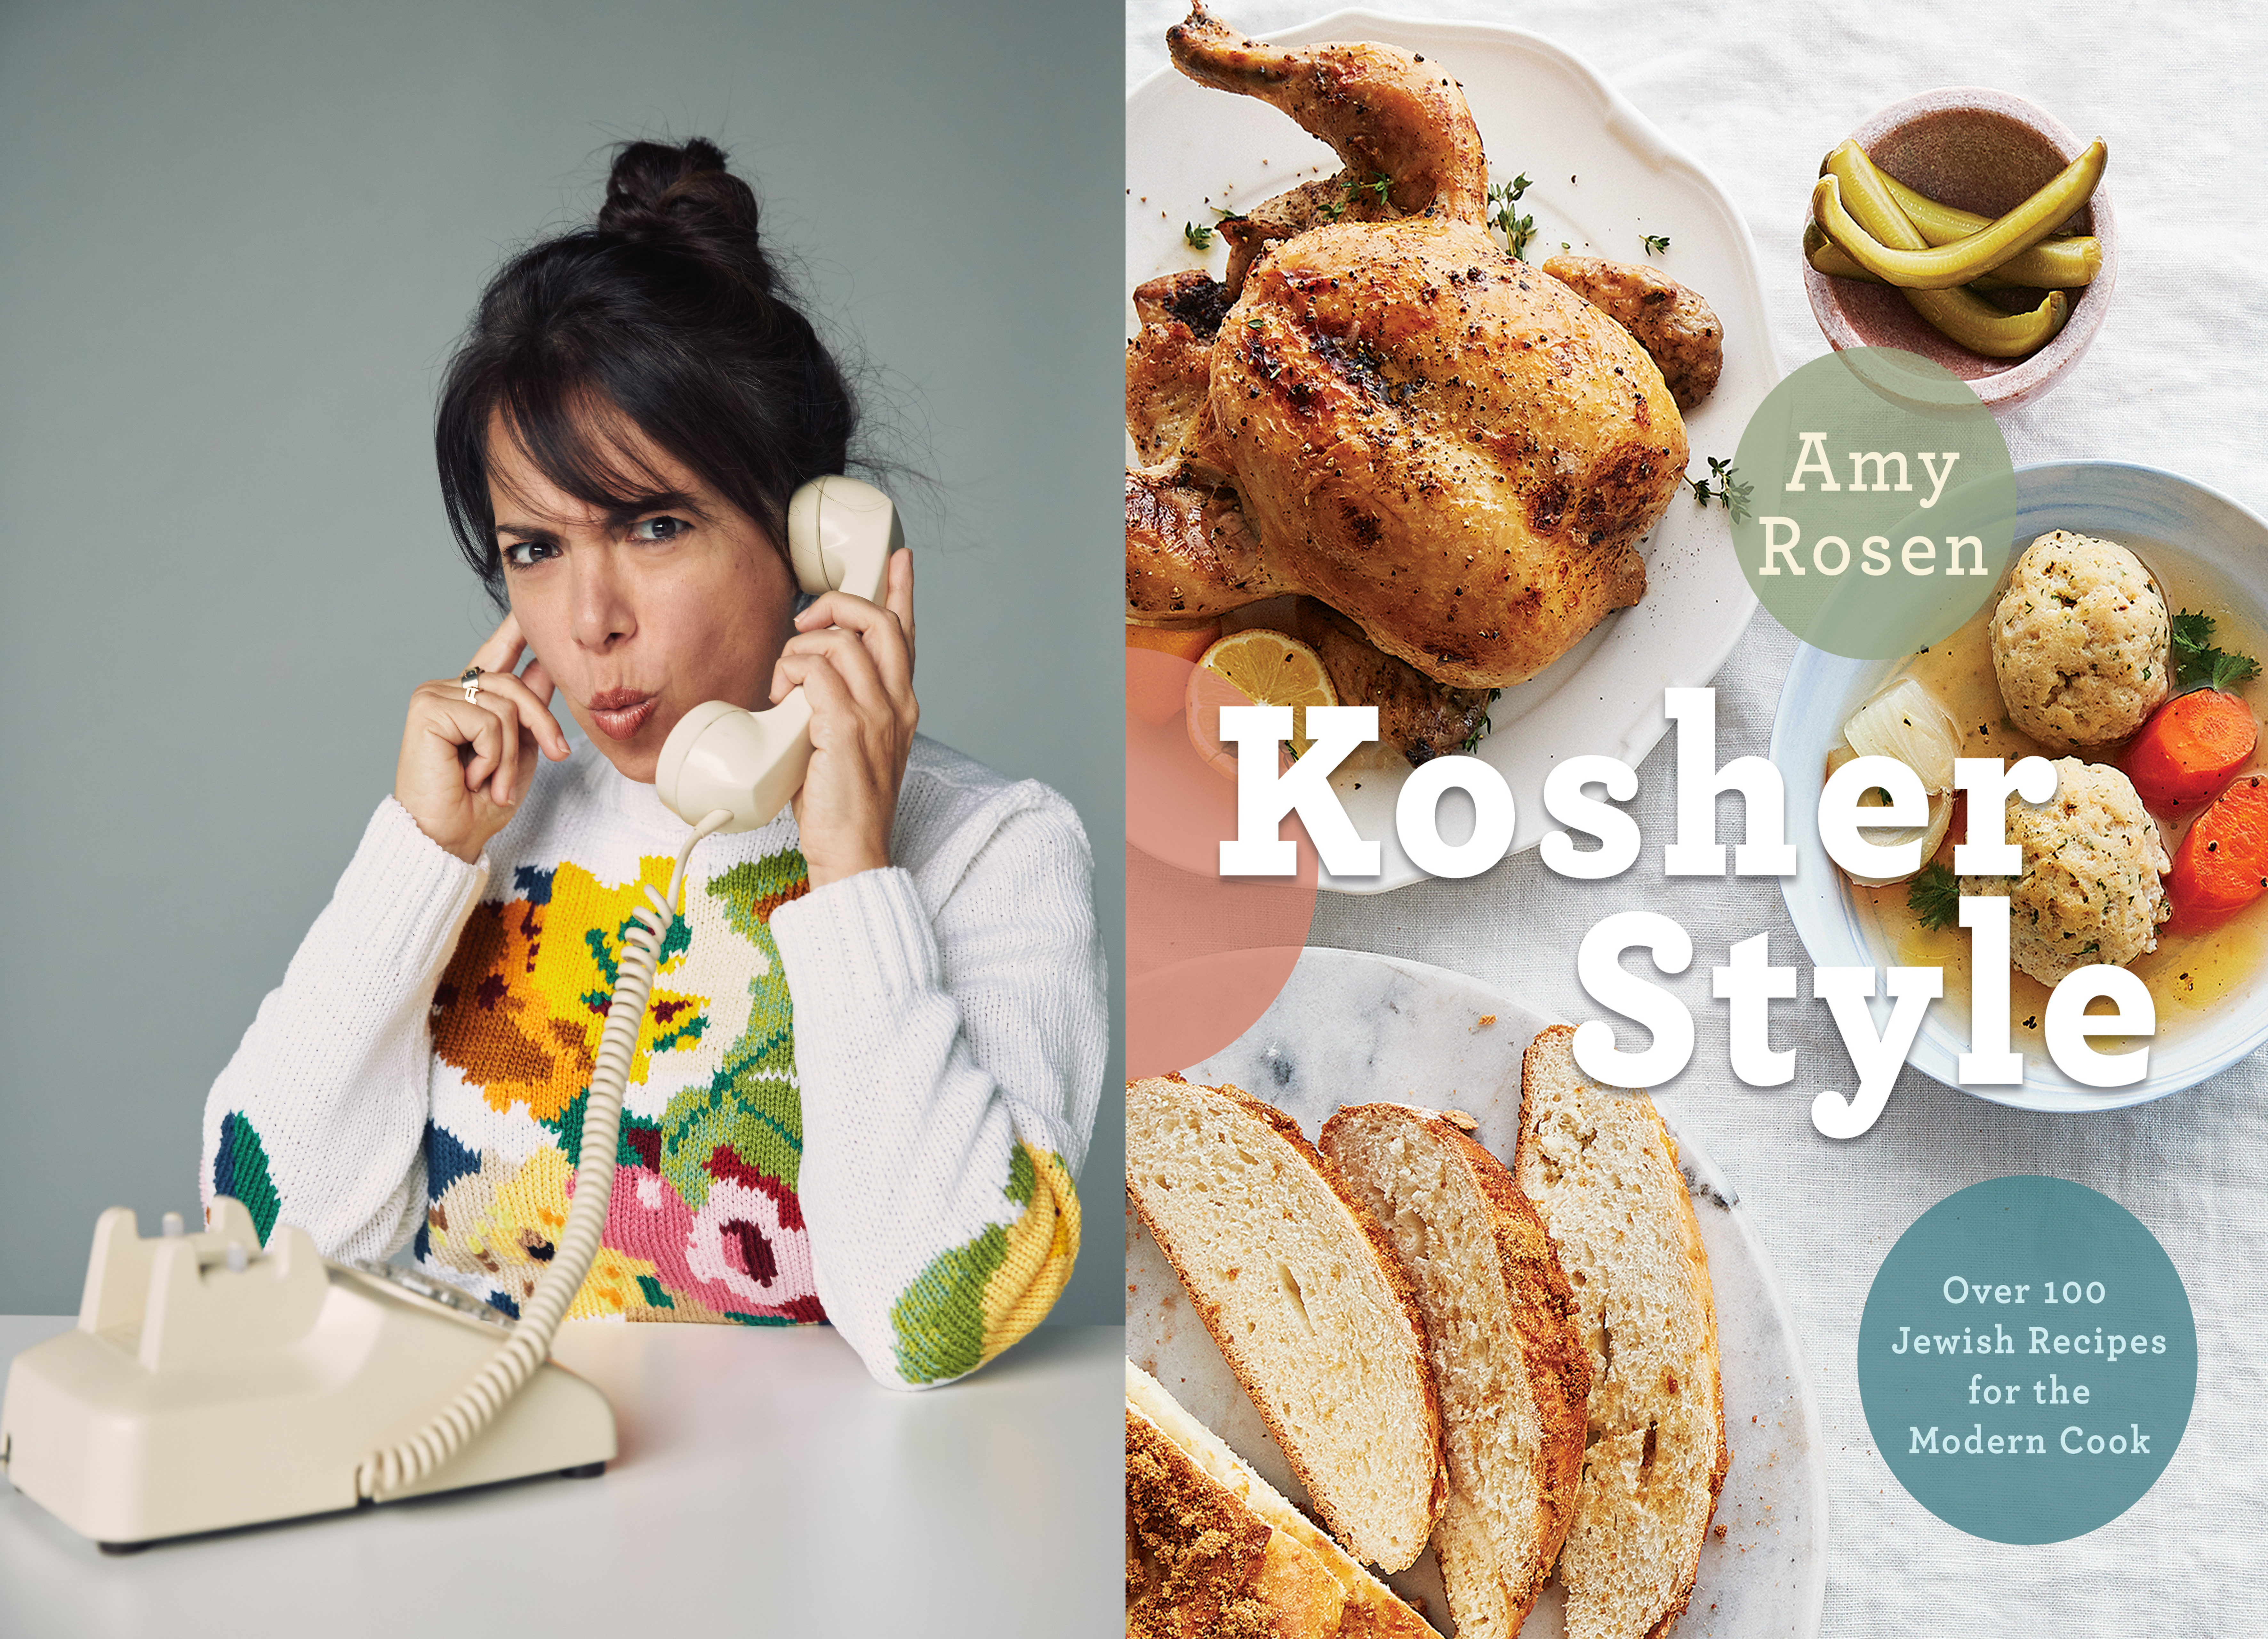 Photo of author Amy Rosen against a grey backdrop talking into a landline. On the other half of the page is the cover for her book Kosher Style.